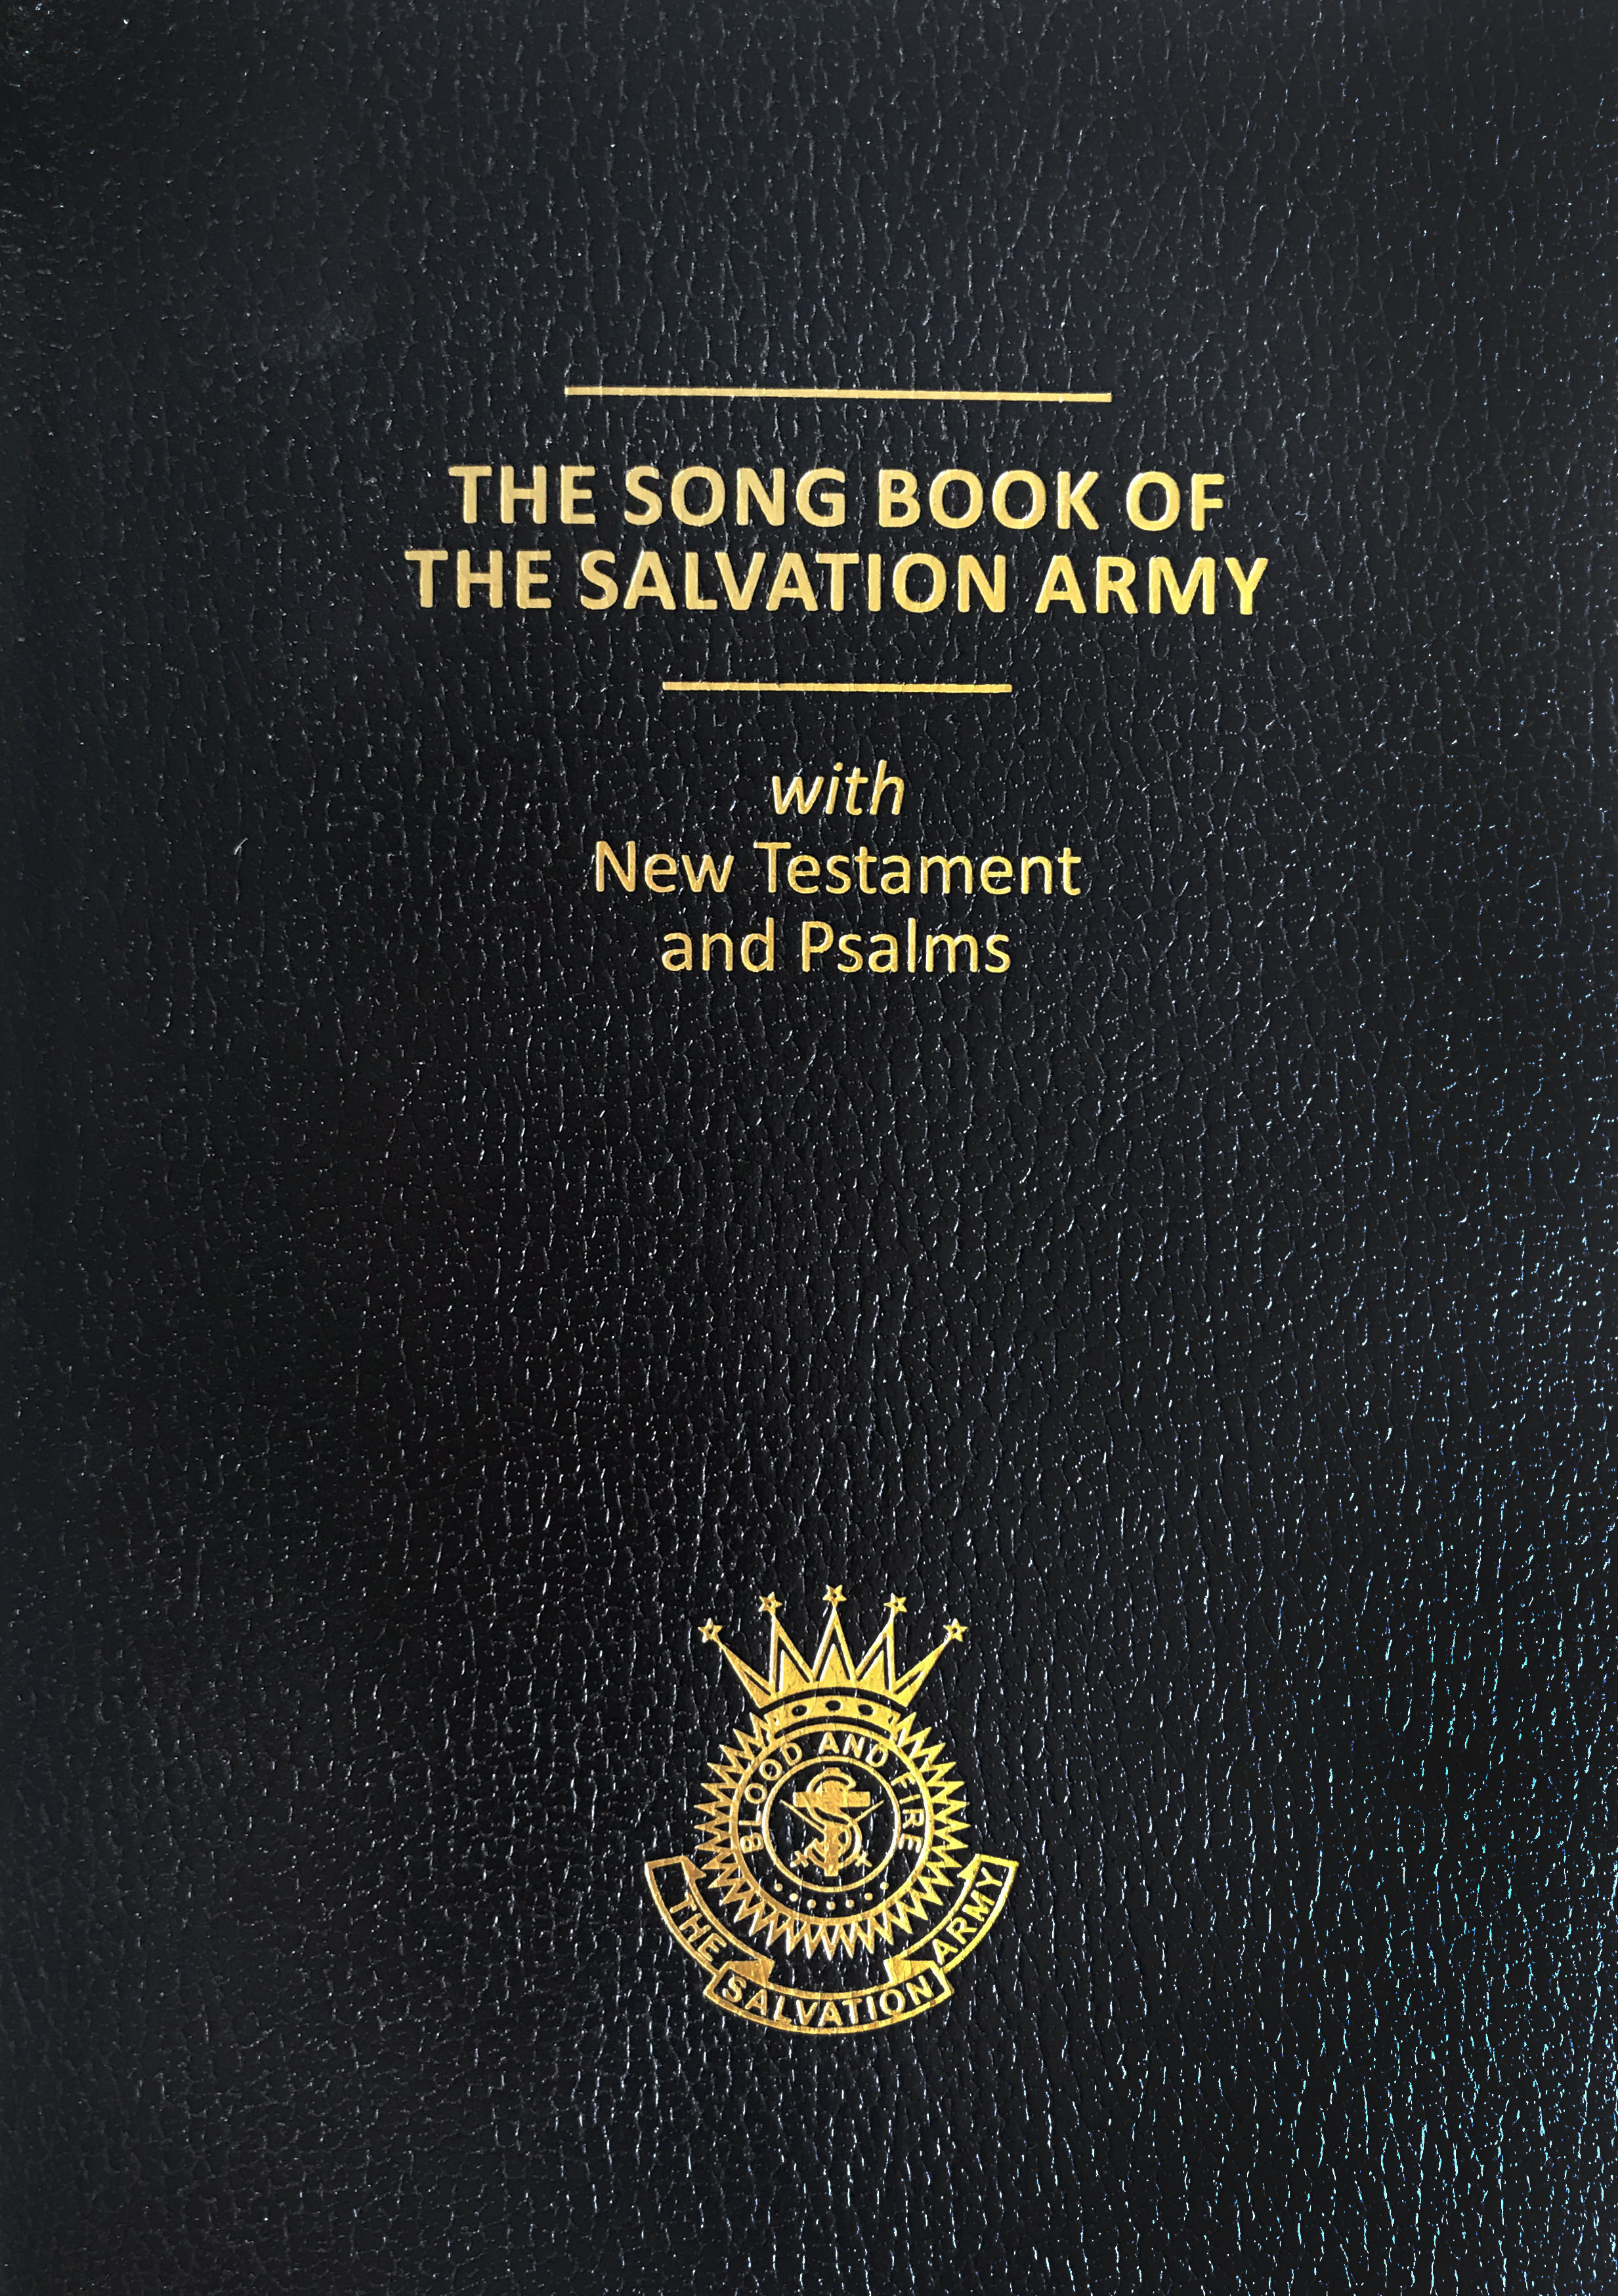 The Salvation Army Song Book - Album Cover